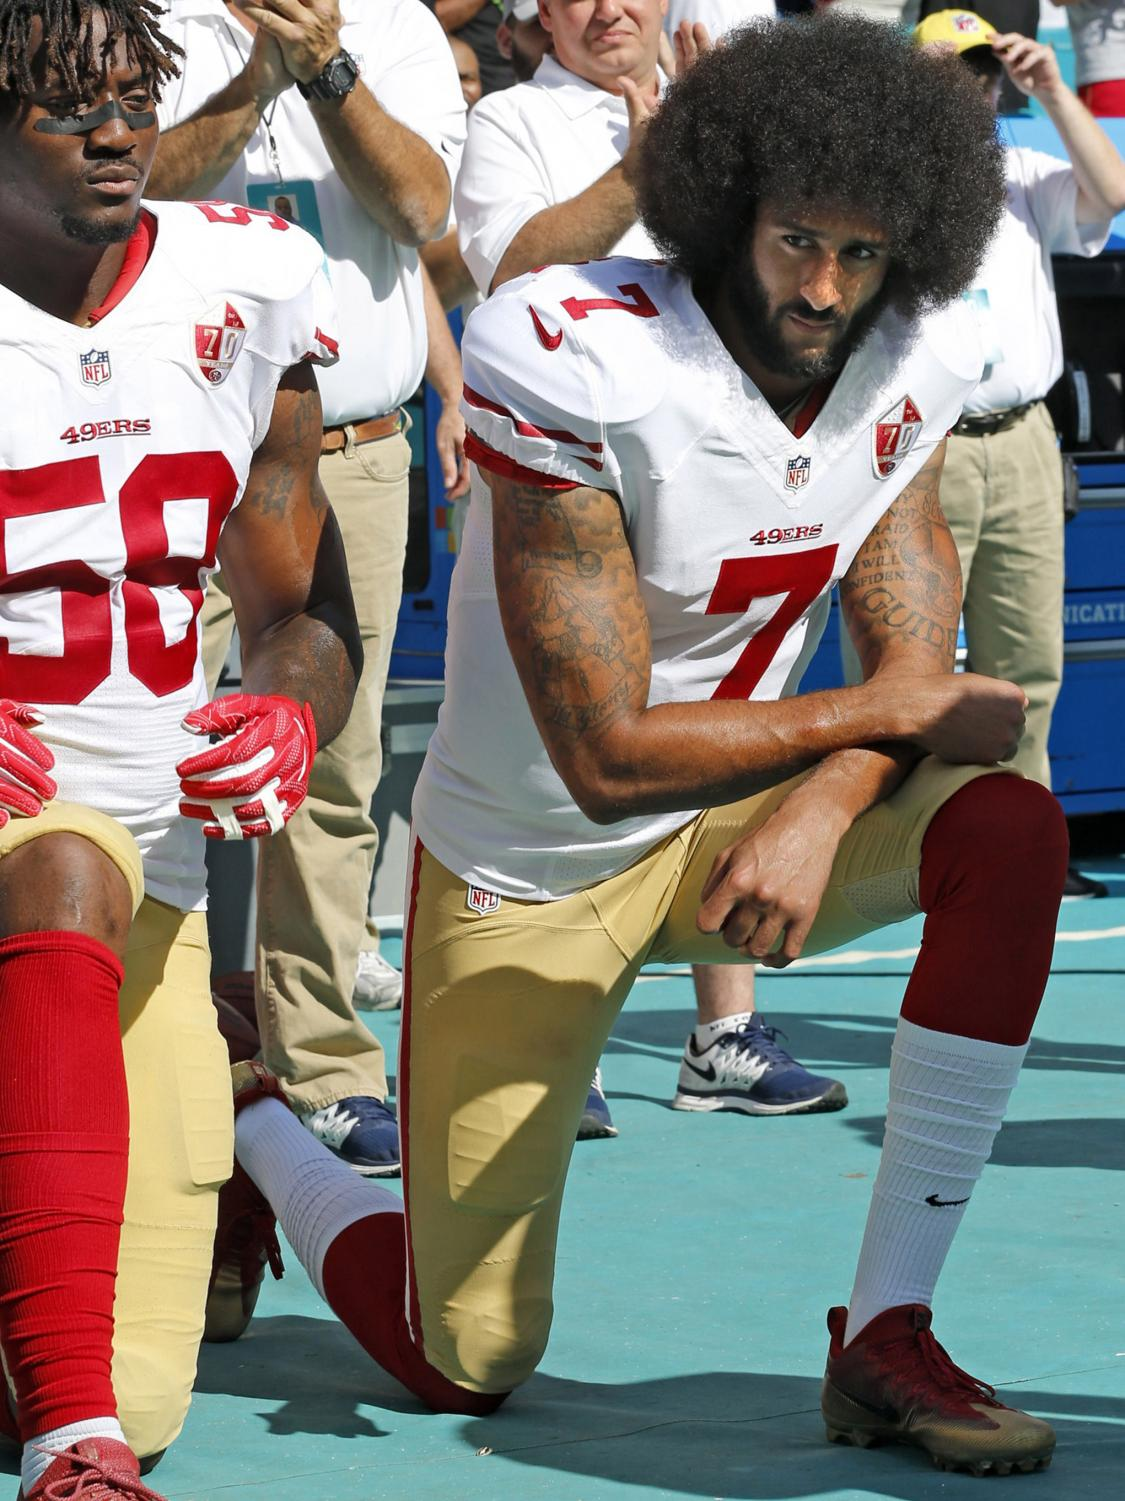 Sports editor Joel Wauters writes about Nike endorsing former San Francisco 49ers player Colin Kaepernick and the controversy surrounding it.